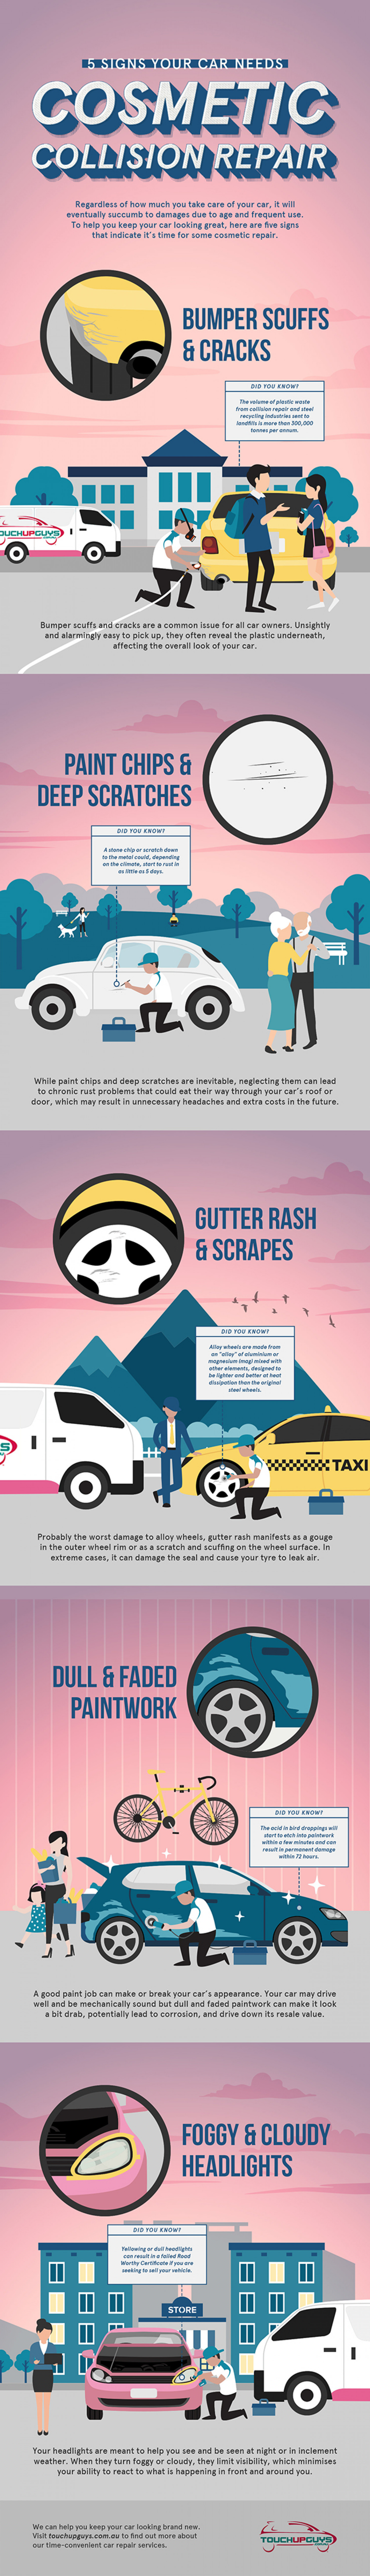 5 Signs Your Car Needs Cosmetic Collision Repair Infographic